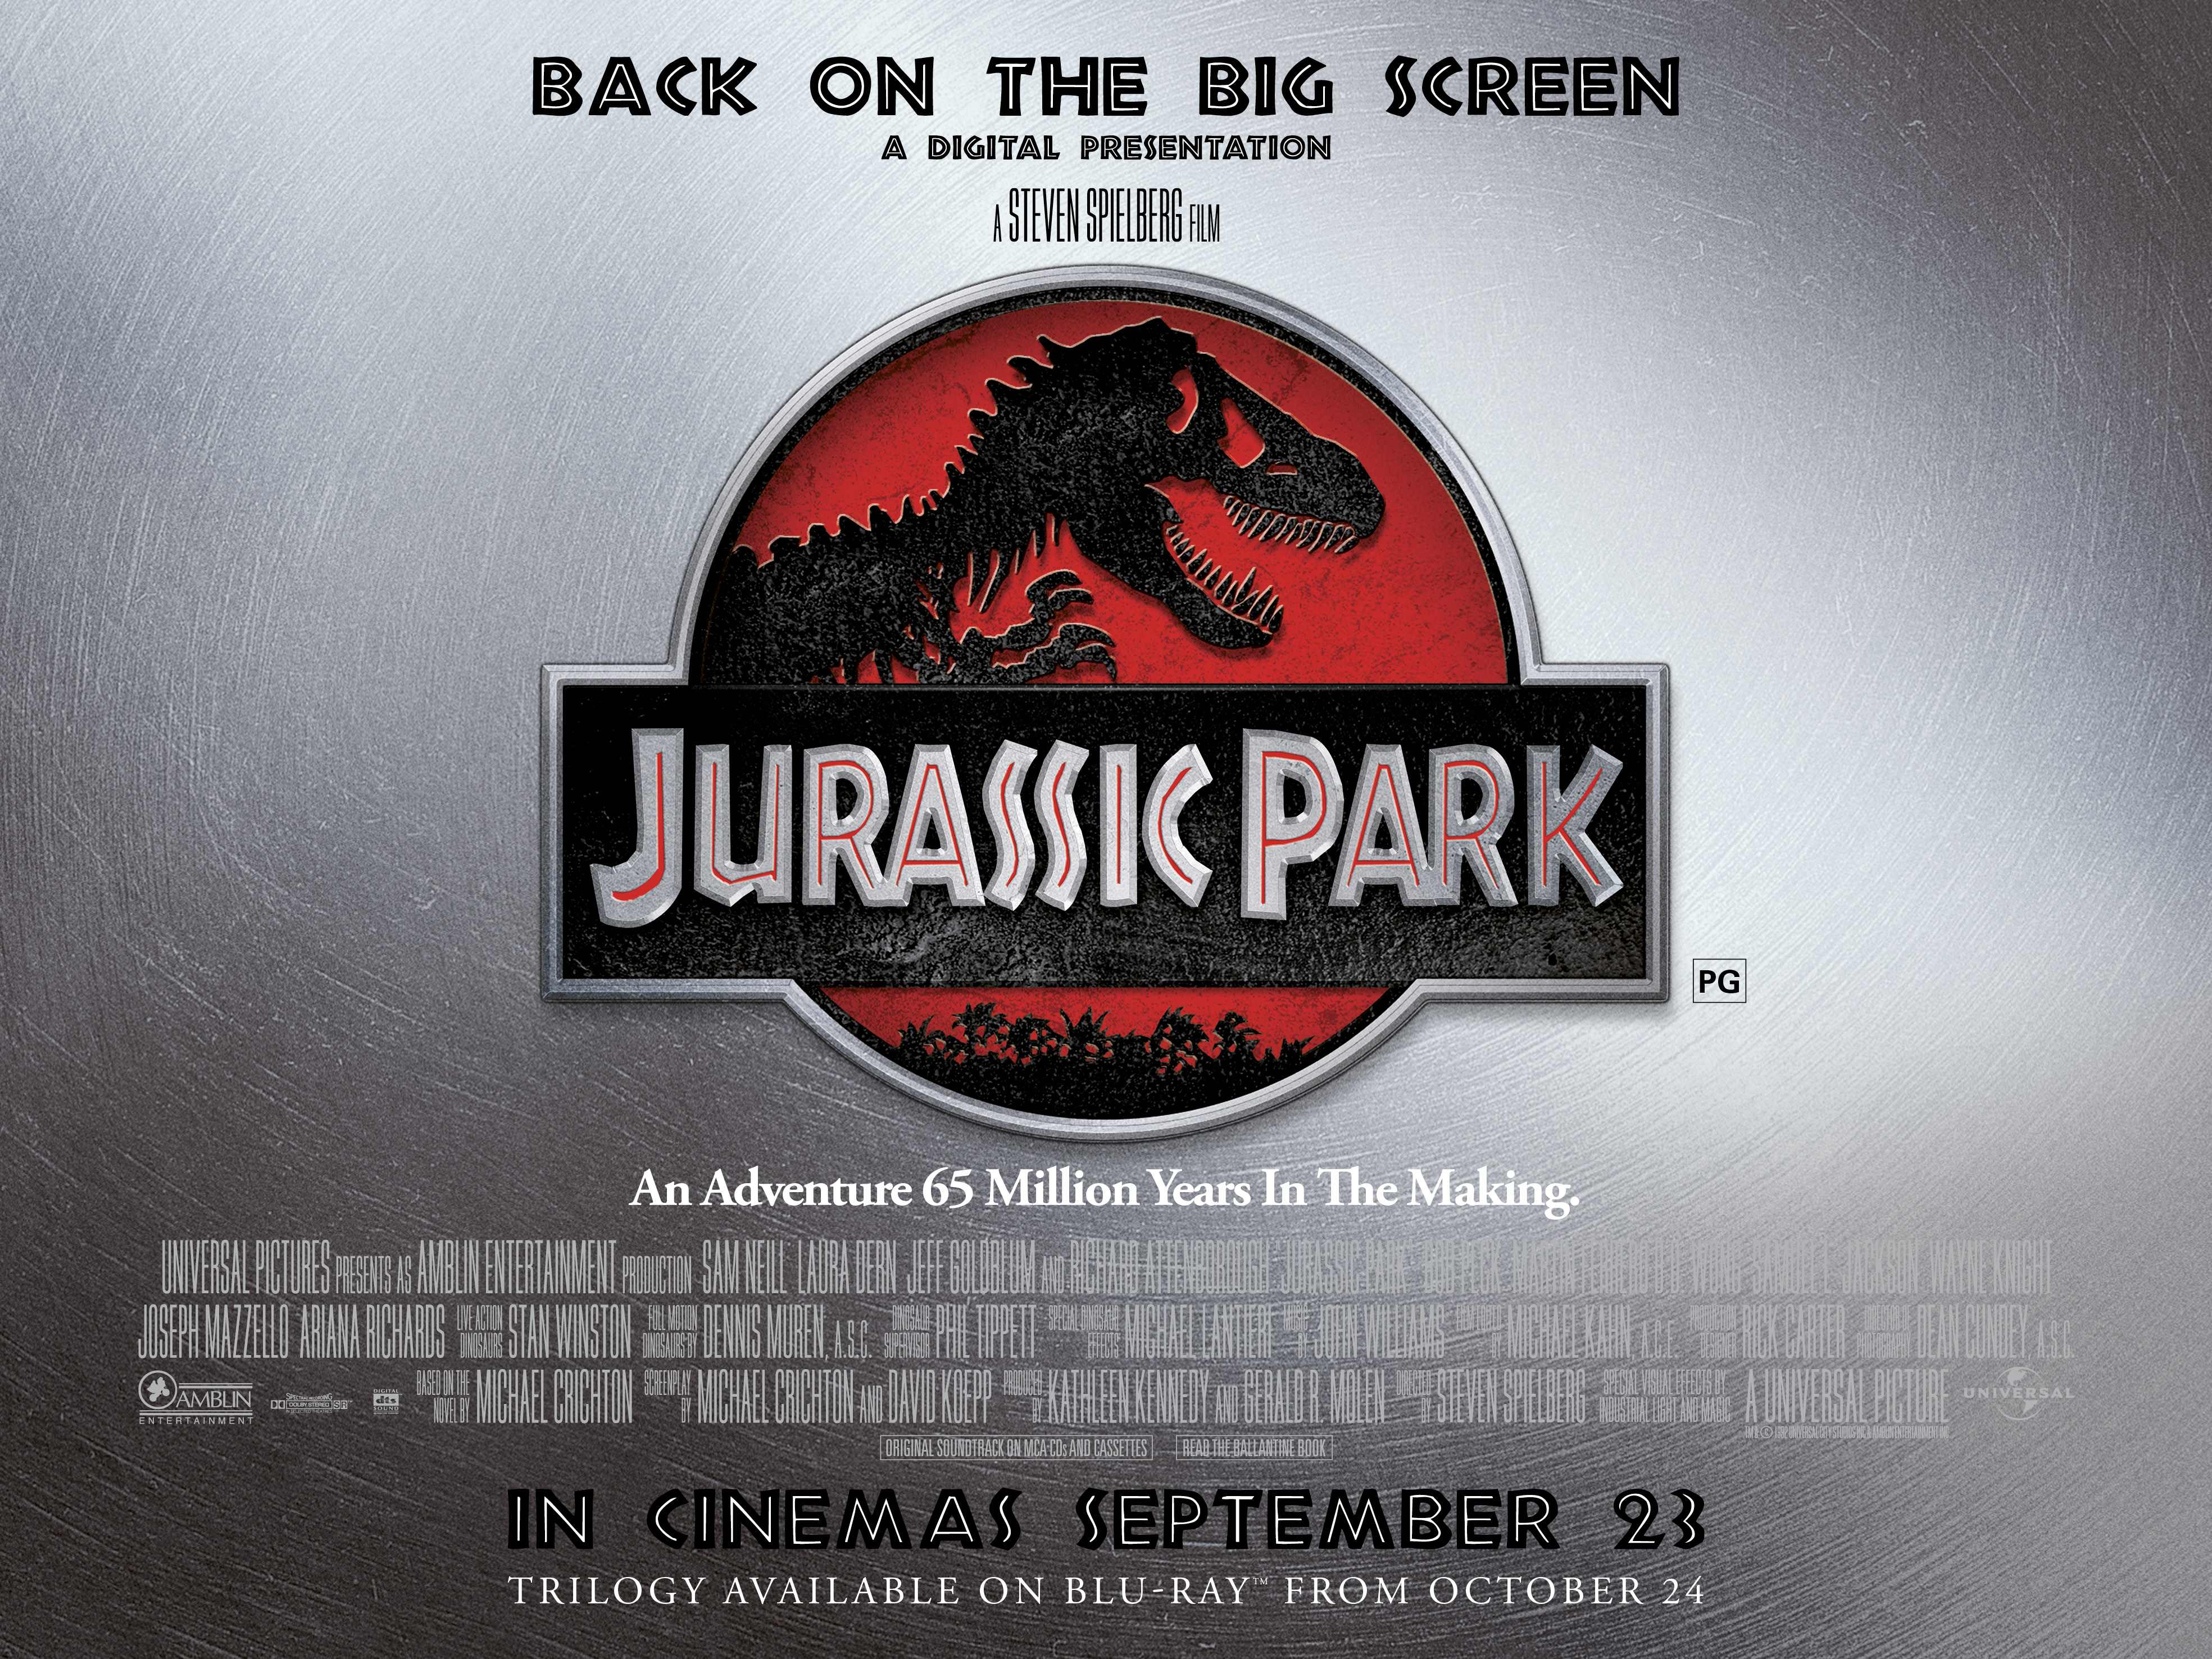 Movie Posters 2011: Jurassic Park Remastered Review